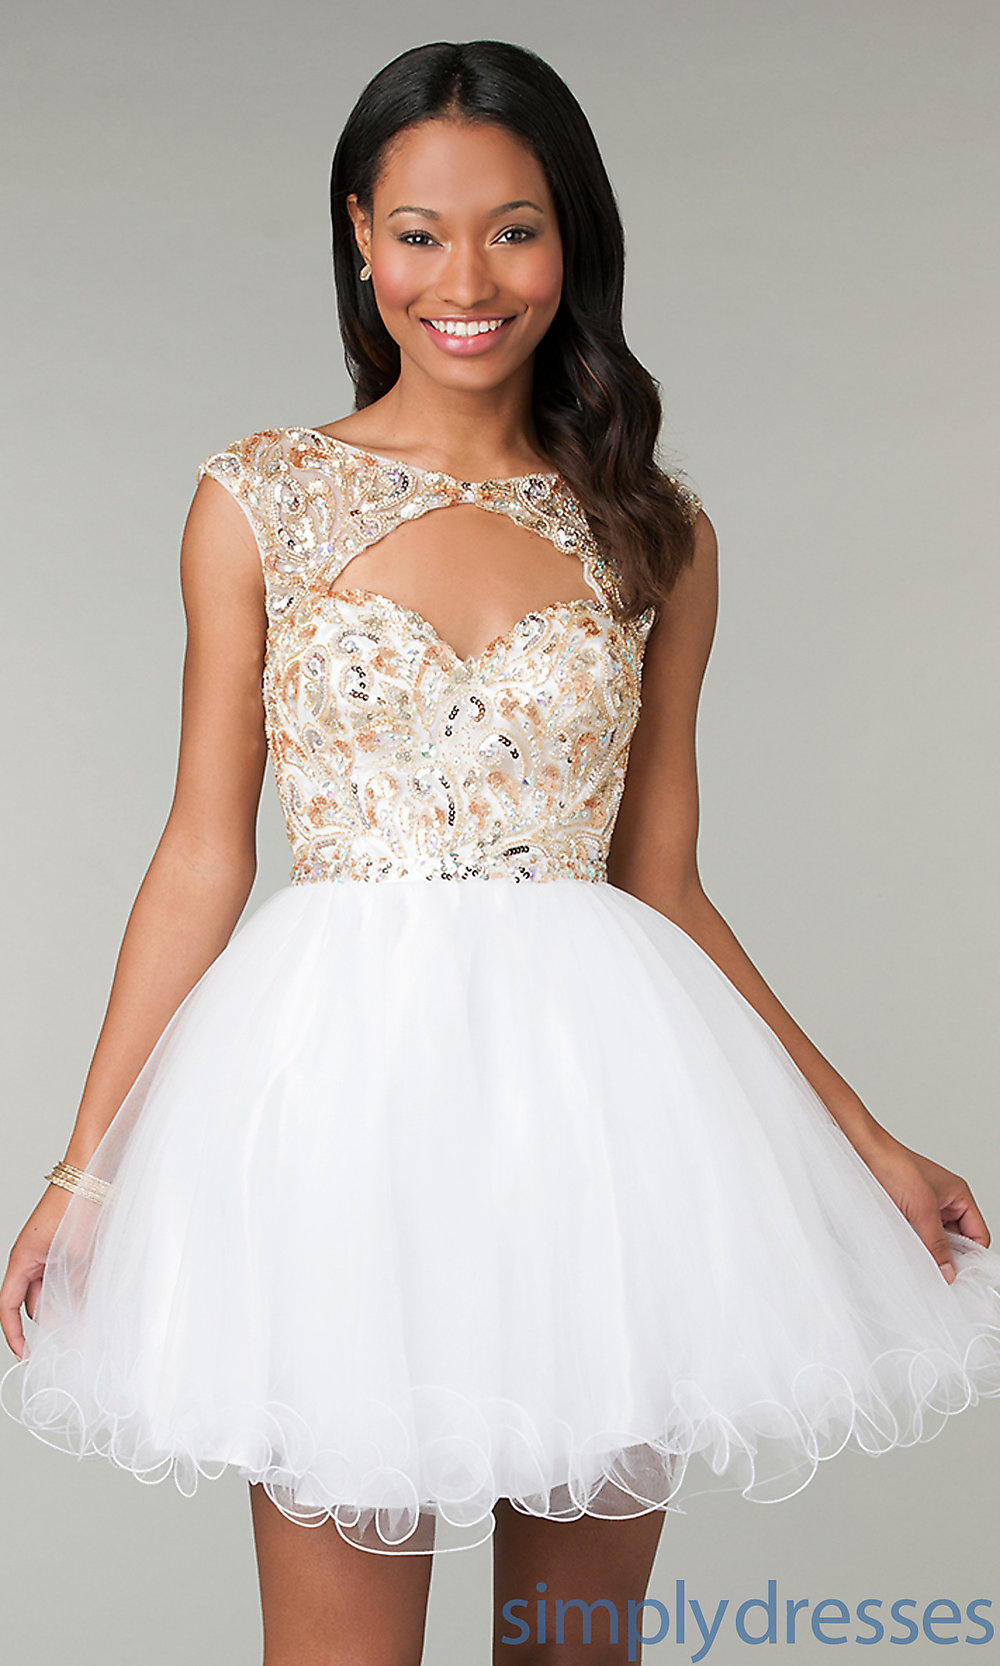 Beaded Cinderella Wedding Dresses Shopping Guide We Are